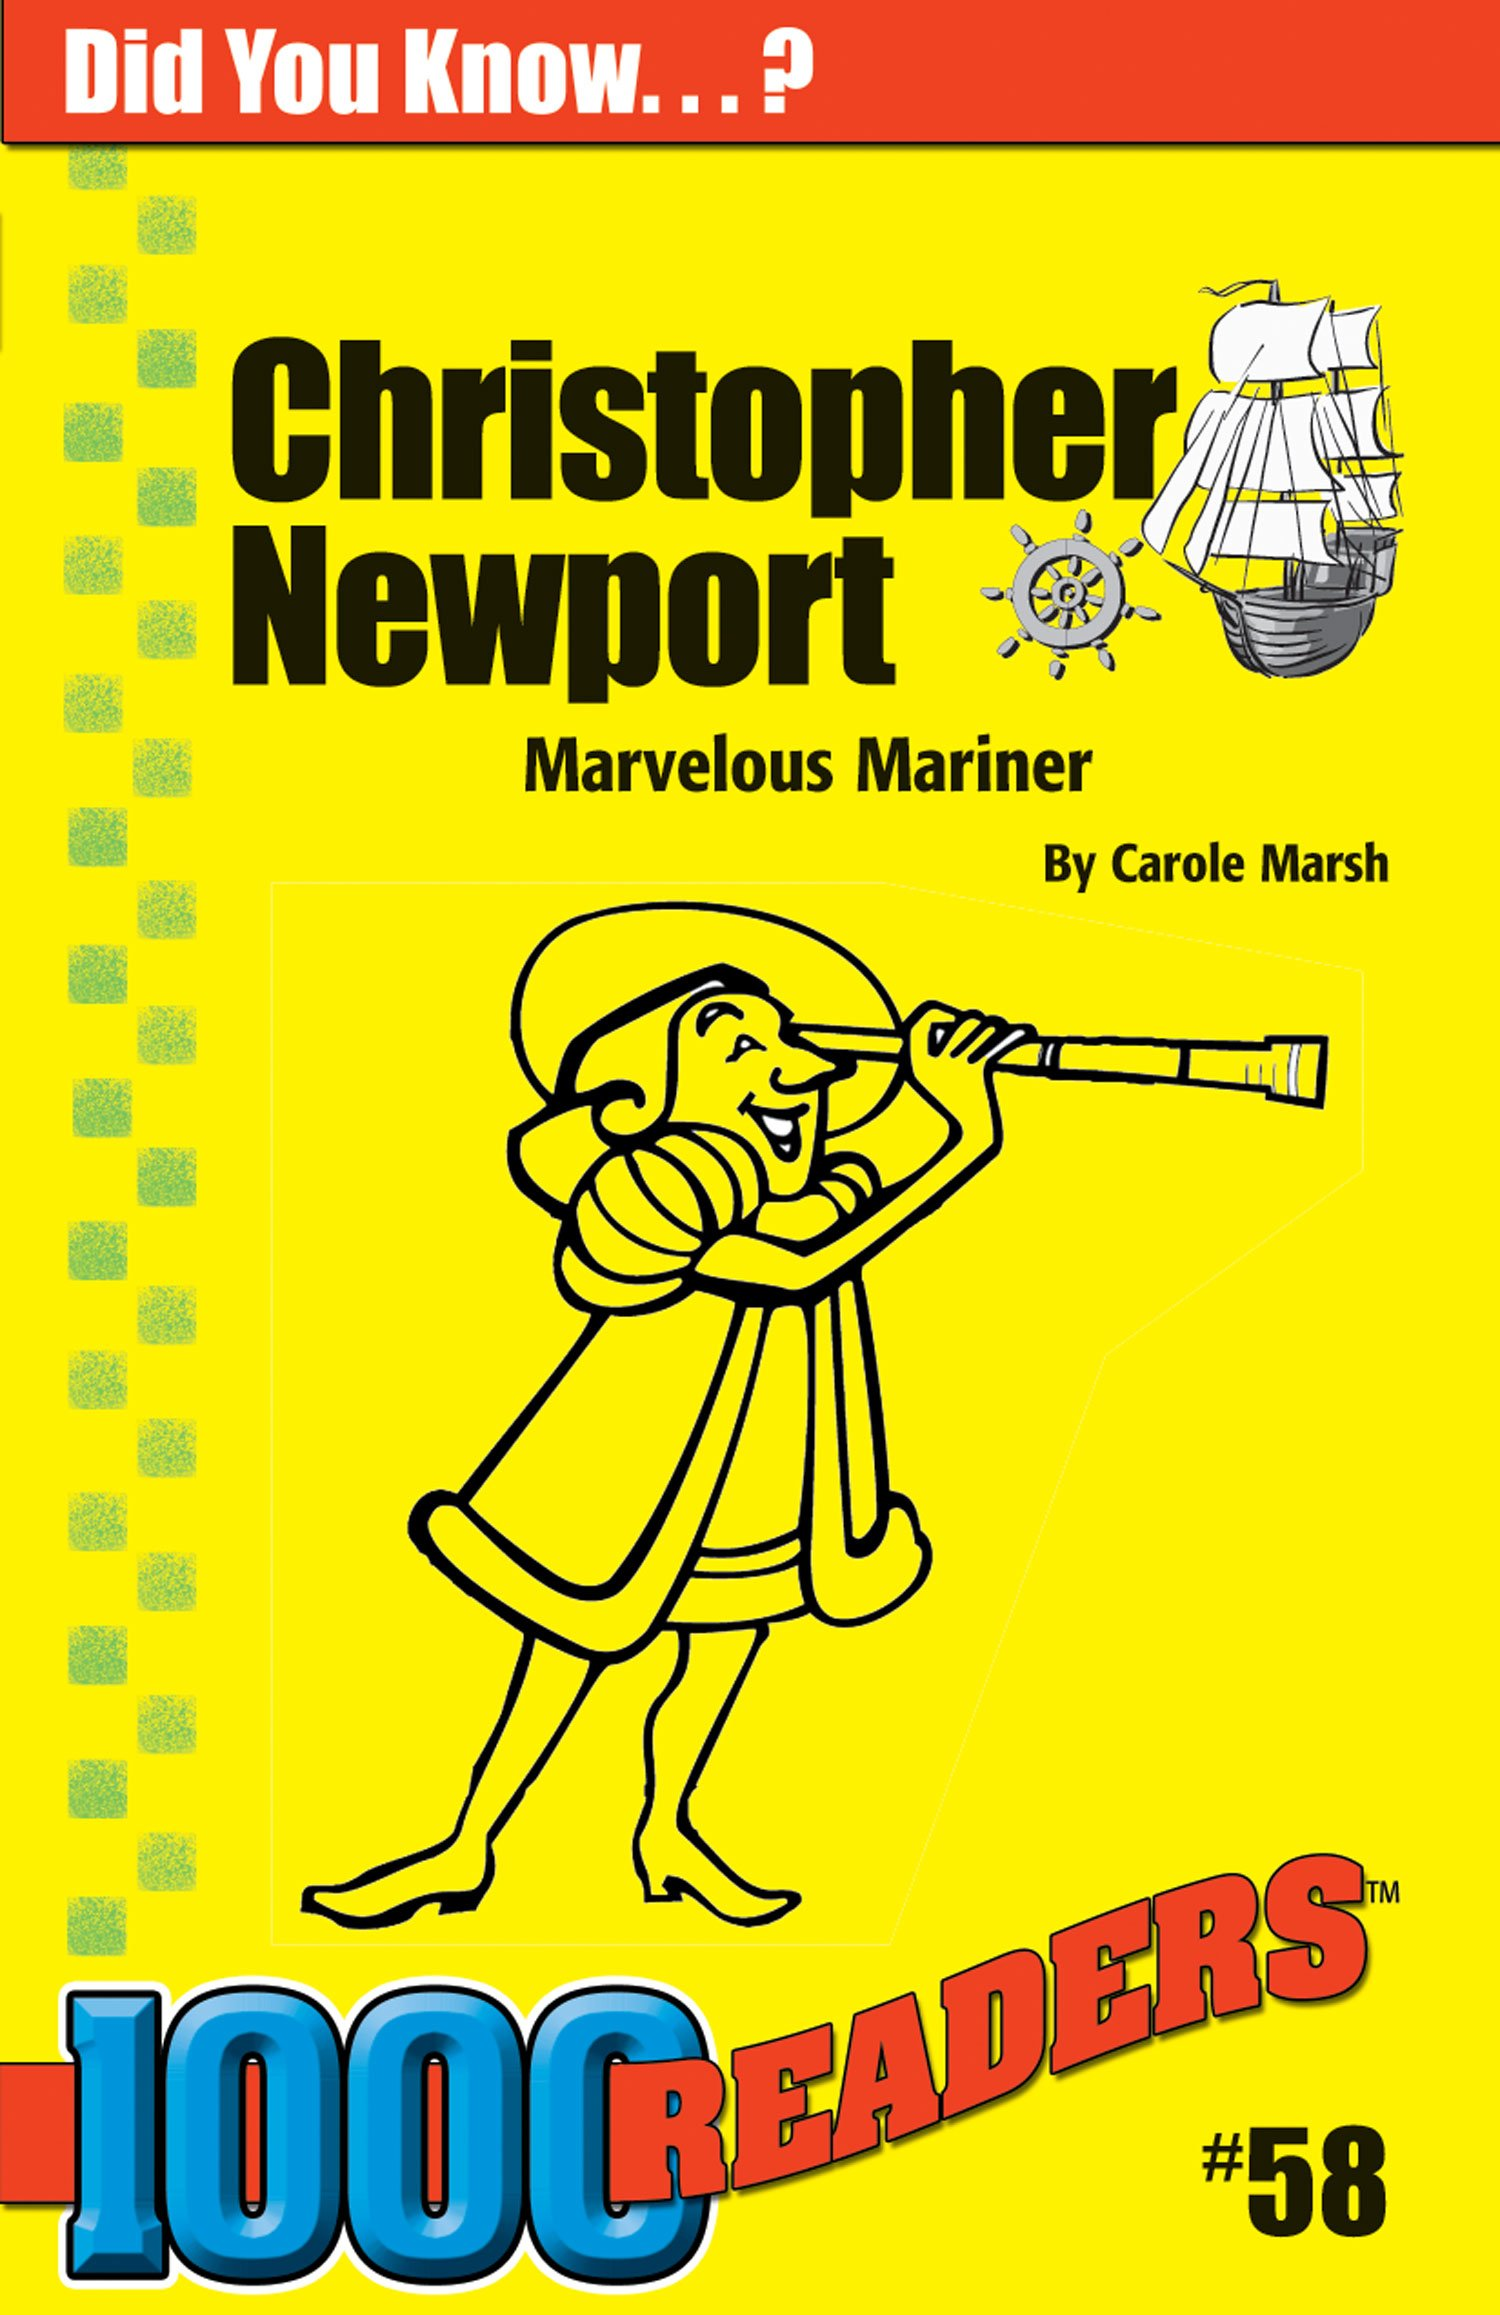 Christopher Newport: Marvelous Mariner (58) (1000 Readers)